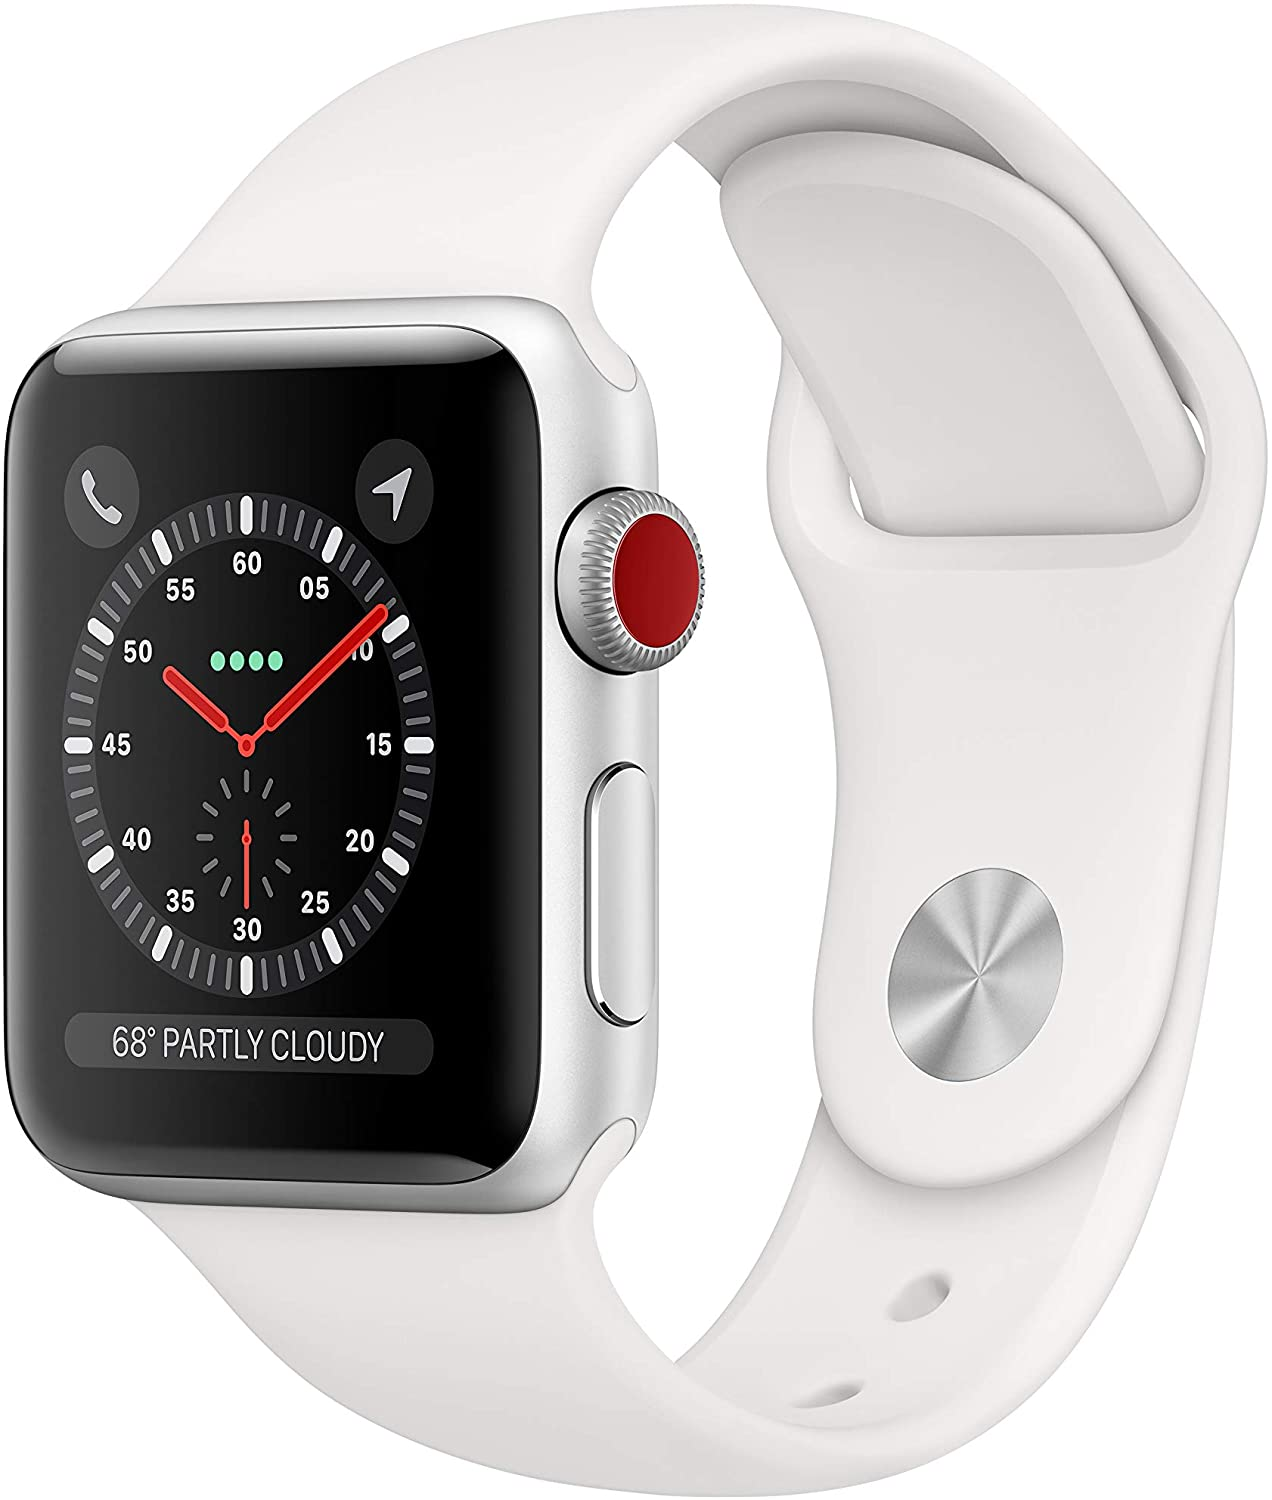 Apple Watch Series 3 (GPS + Cellular, 38mm) - Silver